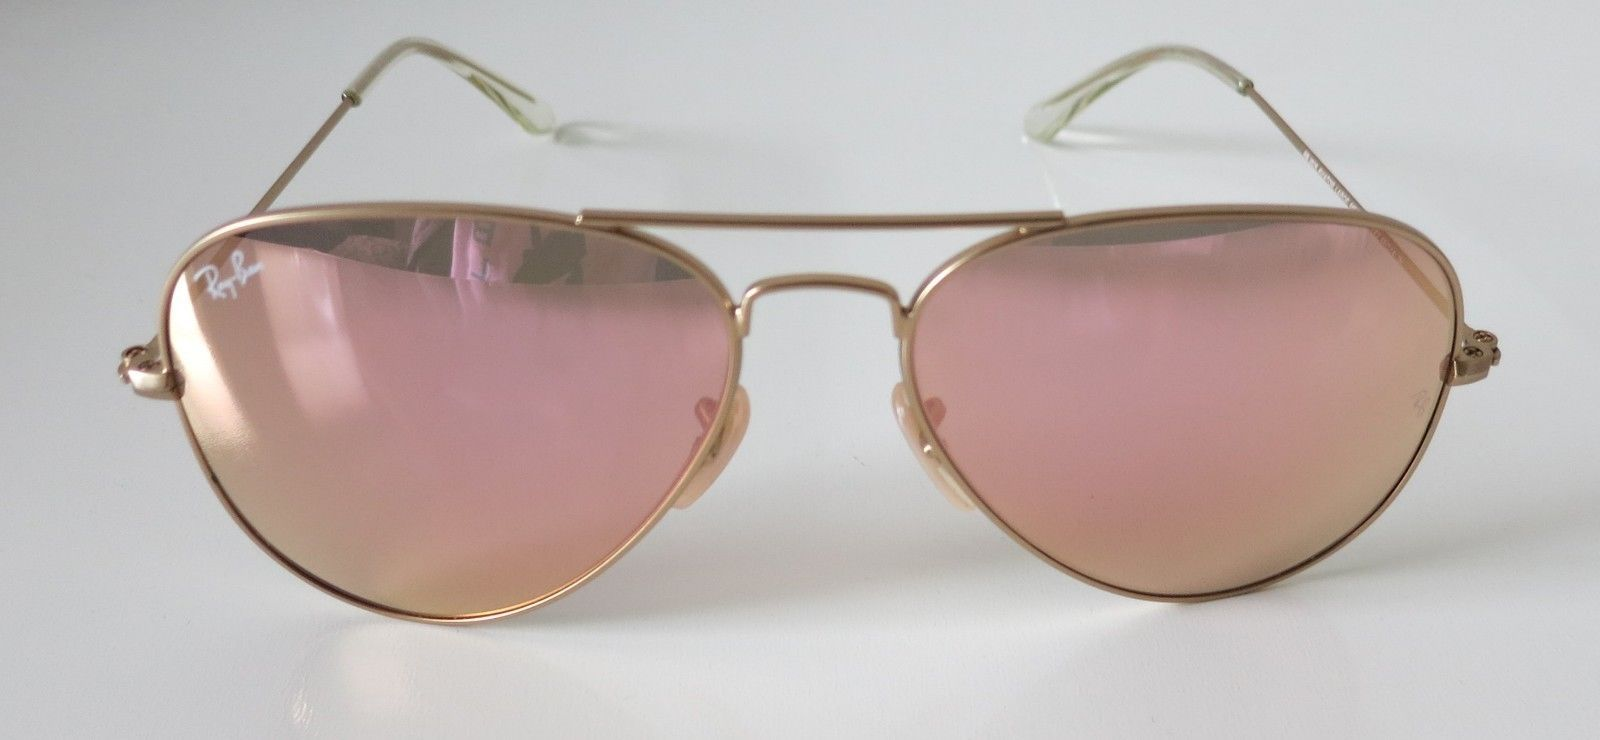 942a4eb337 57. 57. Previous. New Ray-Ban RB3025 112 Z2 Aviator Gold Frame Copper Flash  58mm Lens Sunglasses